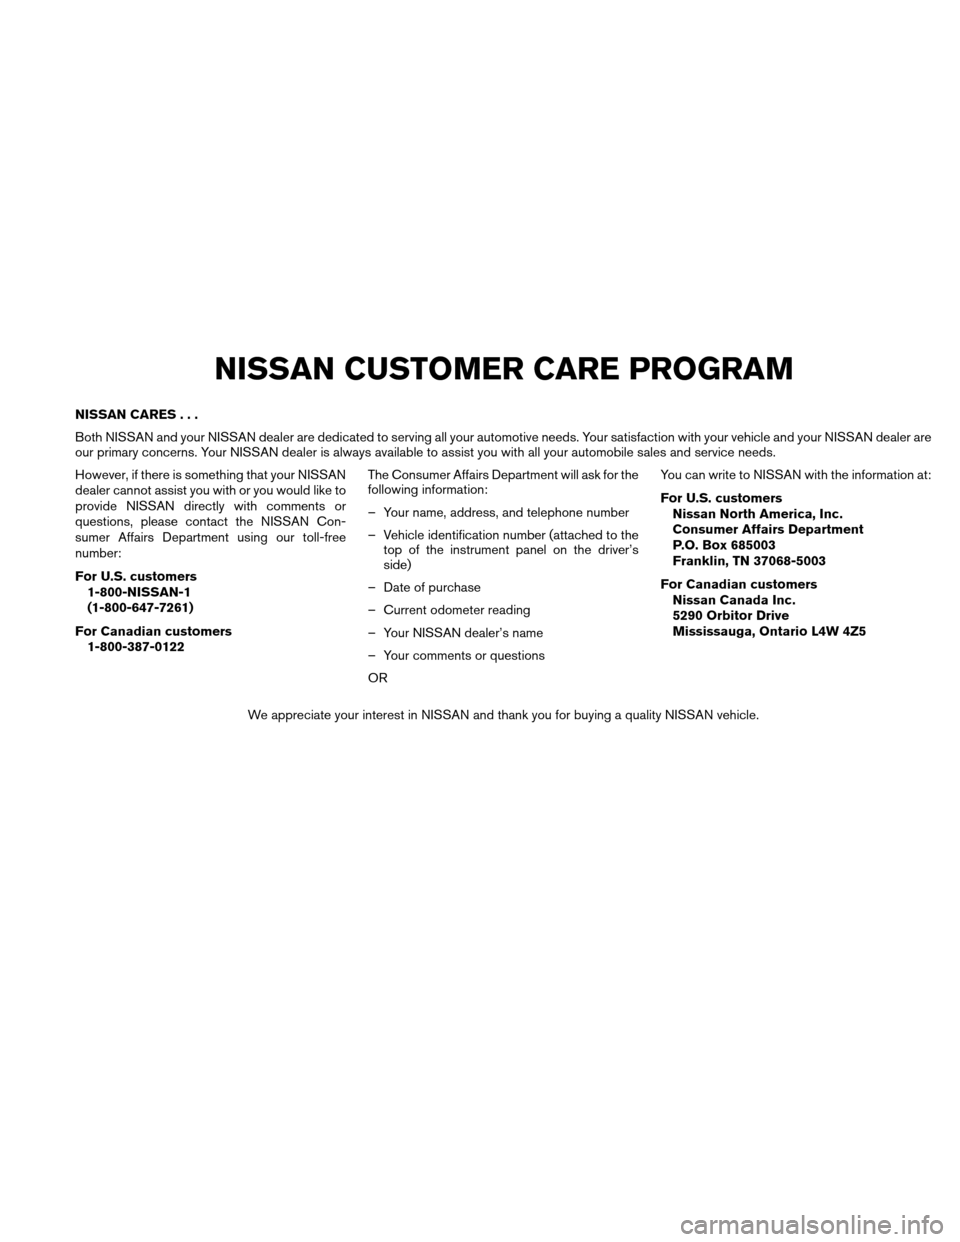 NISSAN ALTIMA HYBRID 2010 L32A / 4.G Owners Manual, Page 5